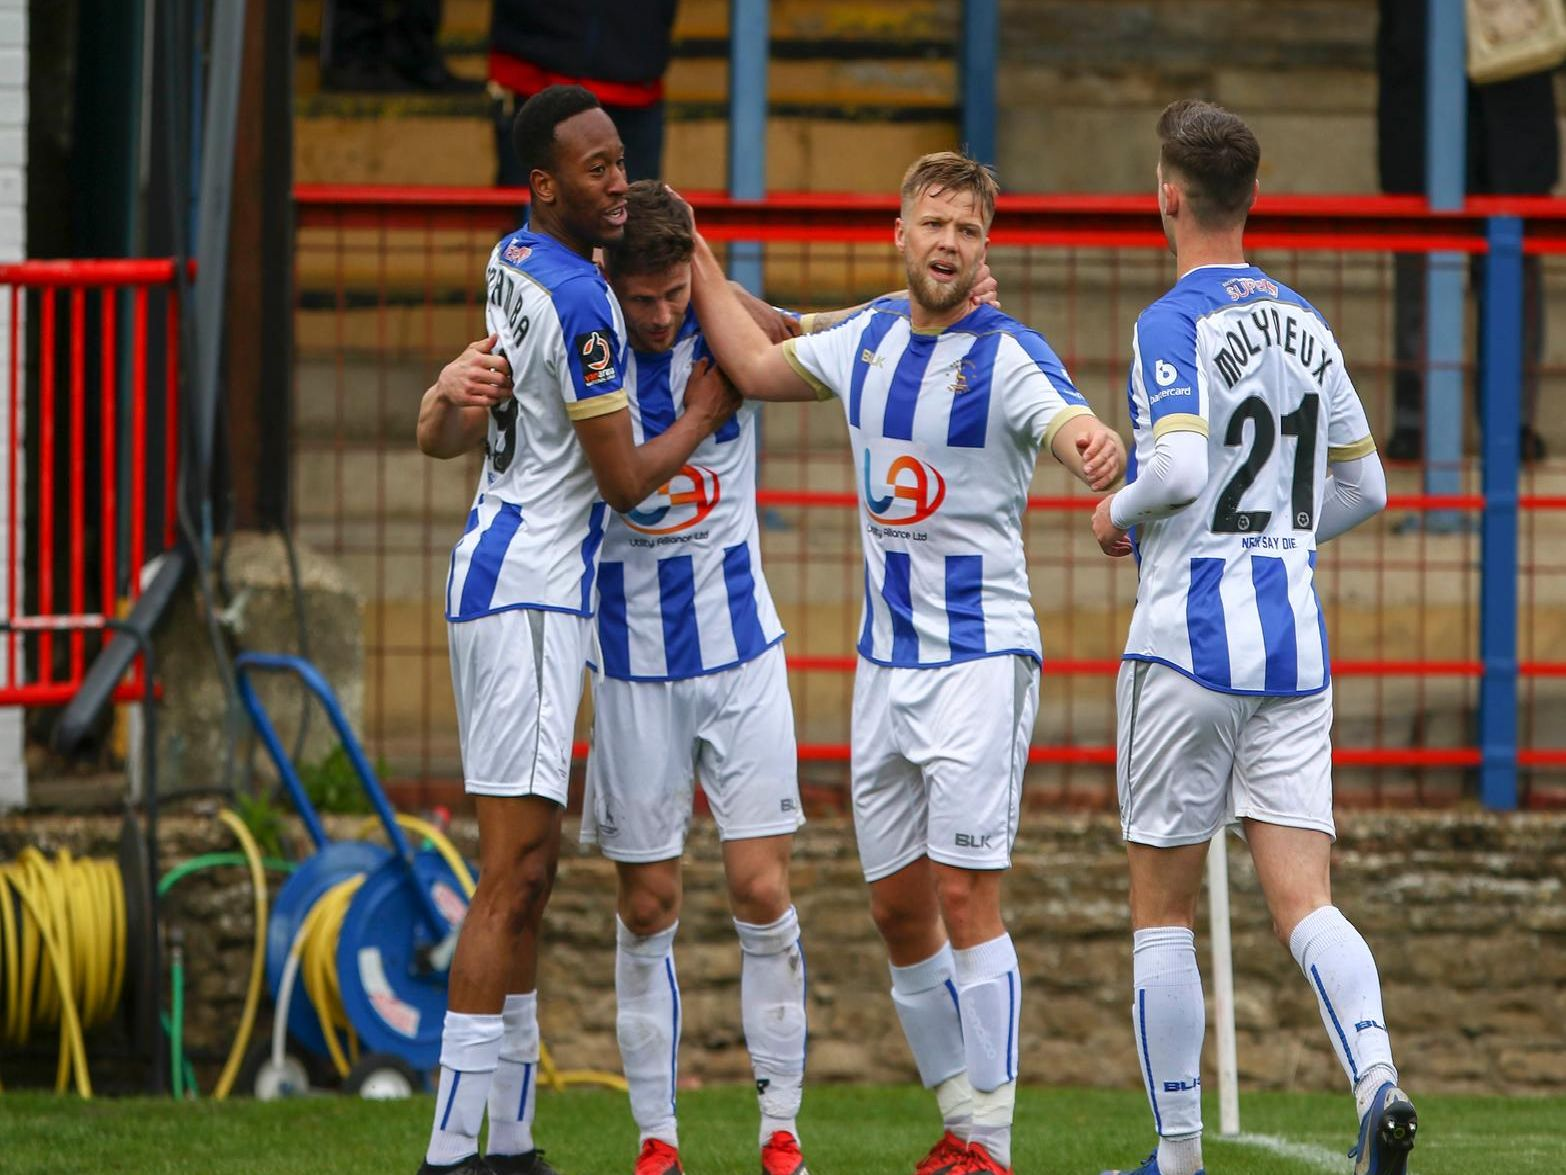 We take a look at how Hartlepool United's rivals fared in the National League